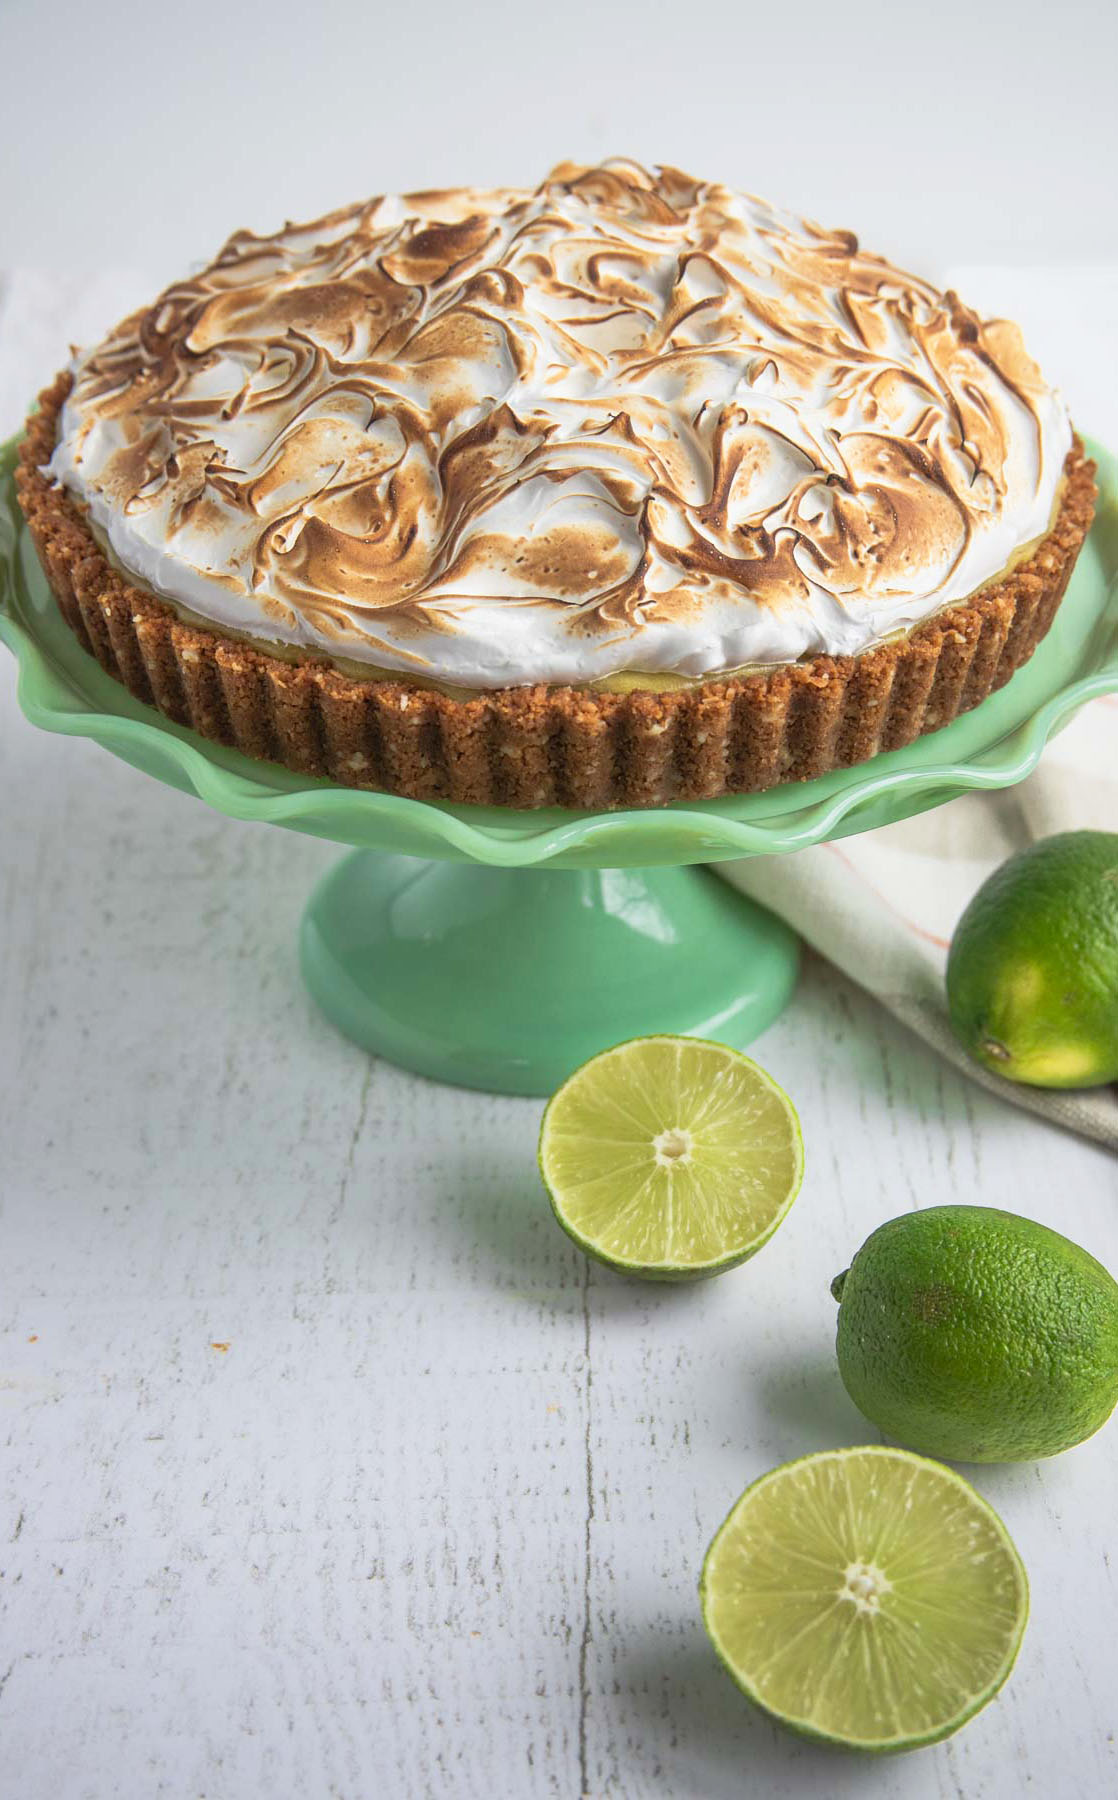 Roasted Pineapple and Lime Curd Tart on a green cake stand with limes in the foreground